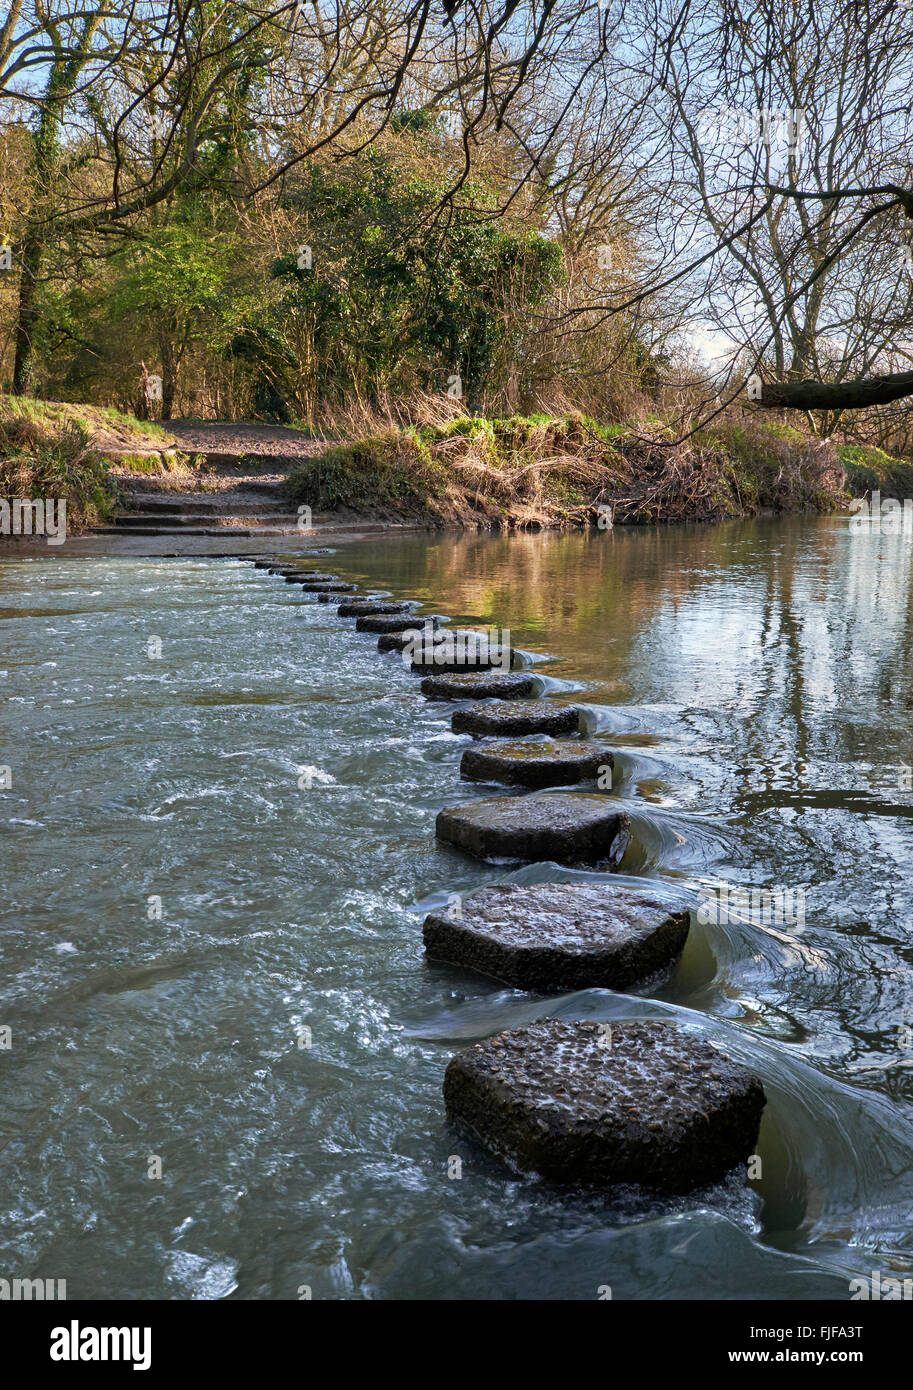 The Stepping Stones across the River Mole at the foot of Box Hill. Westhumble, near Dorking, Surrey, England. - Stock Image